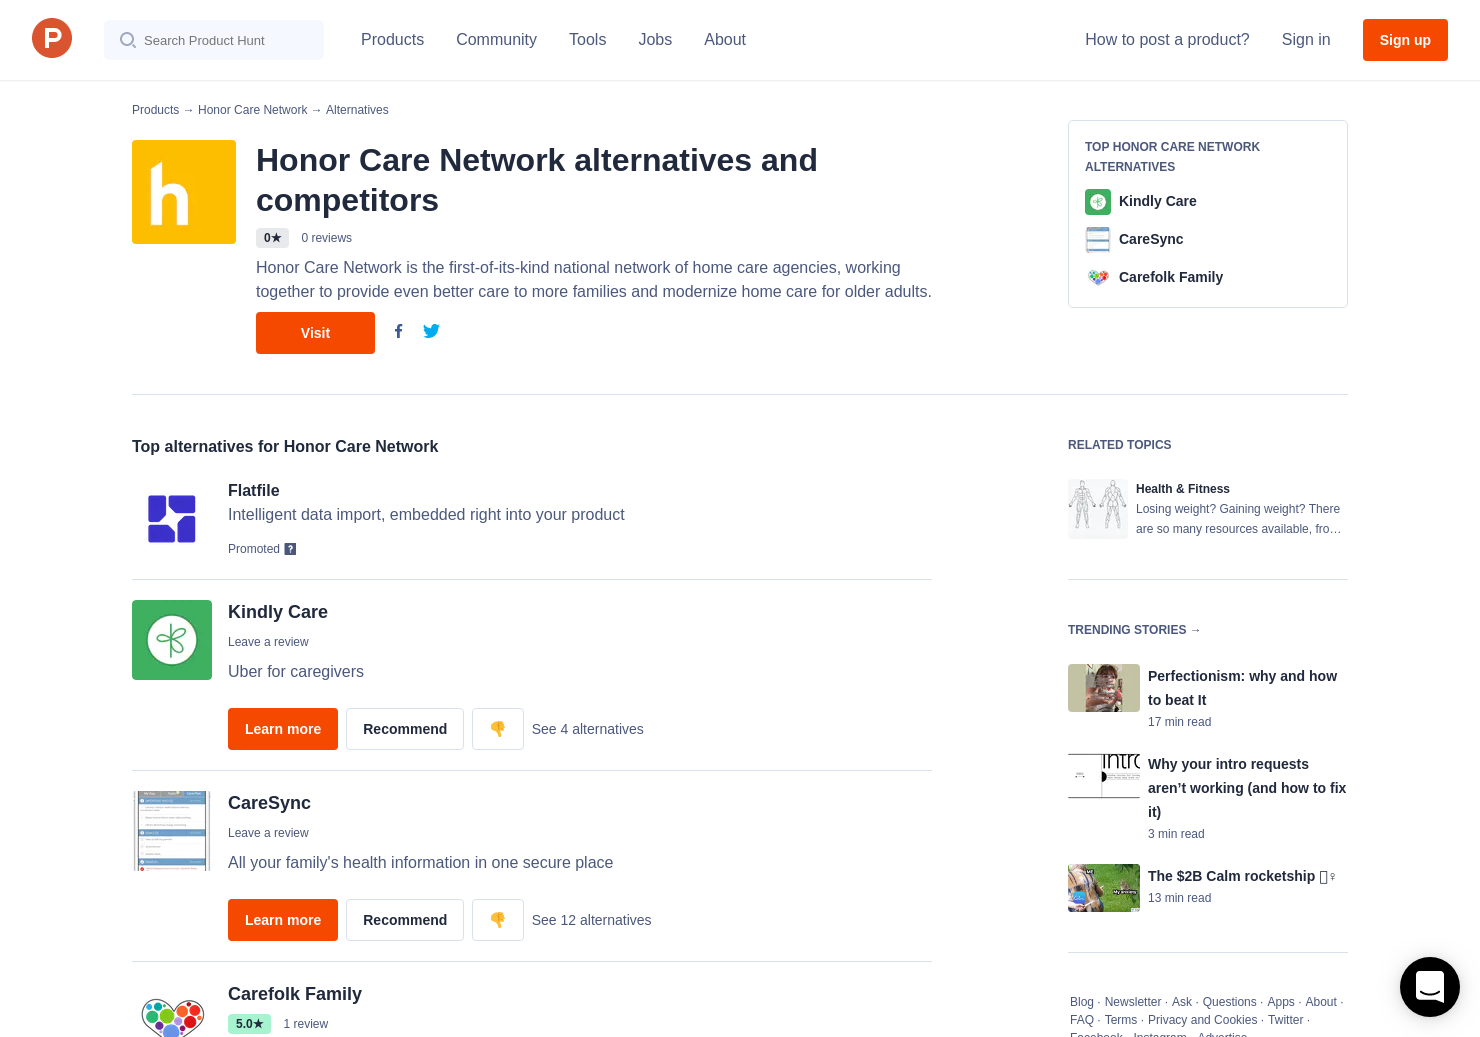 4 Alternatives to Honor Care Network | Product Hunt